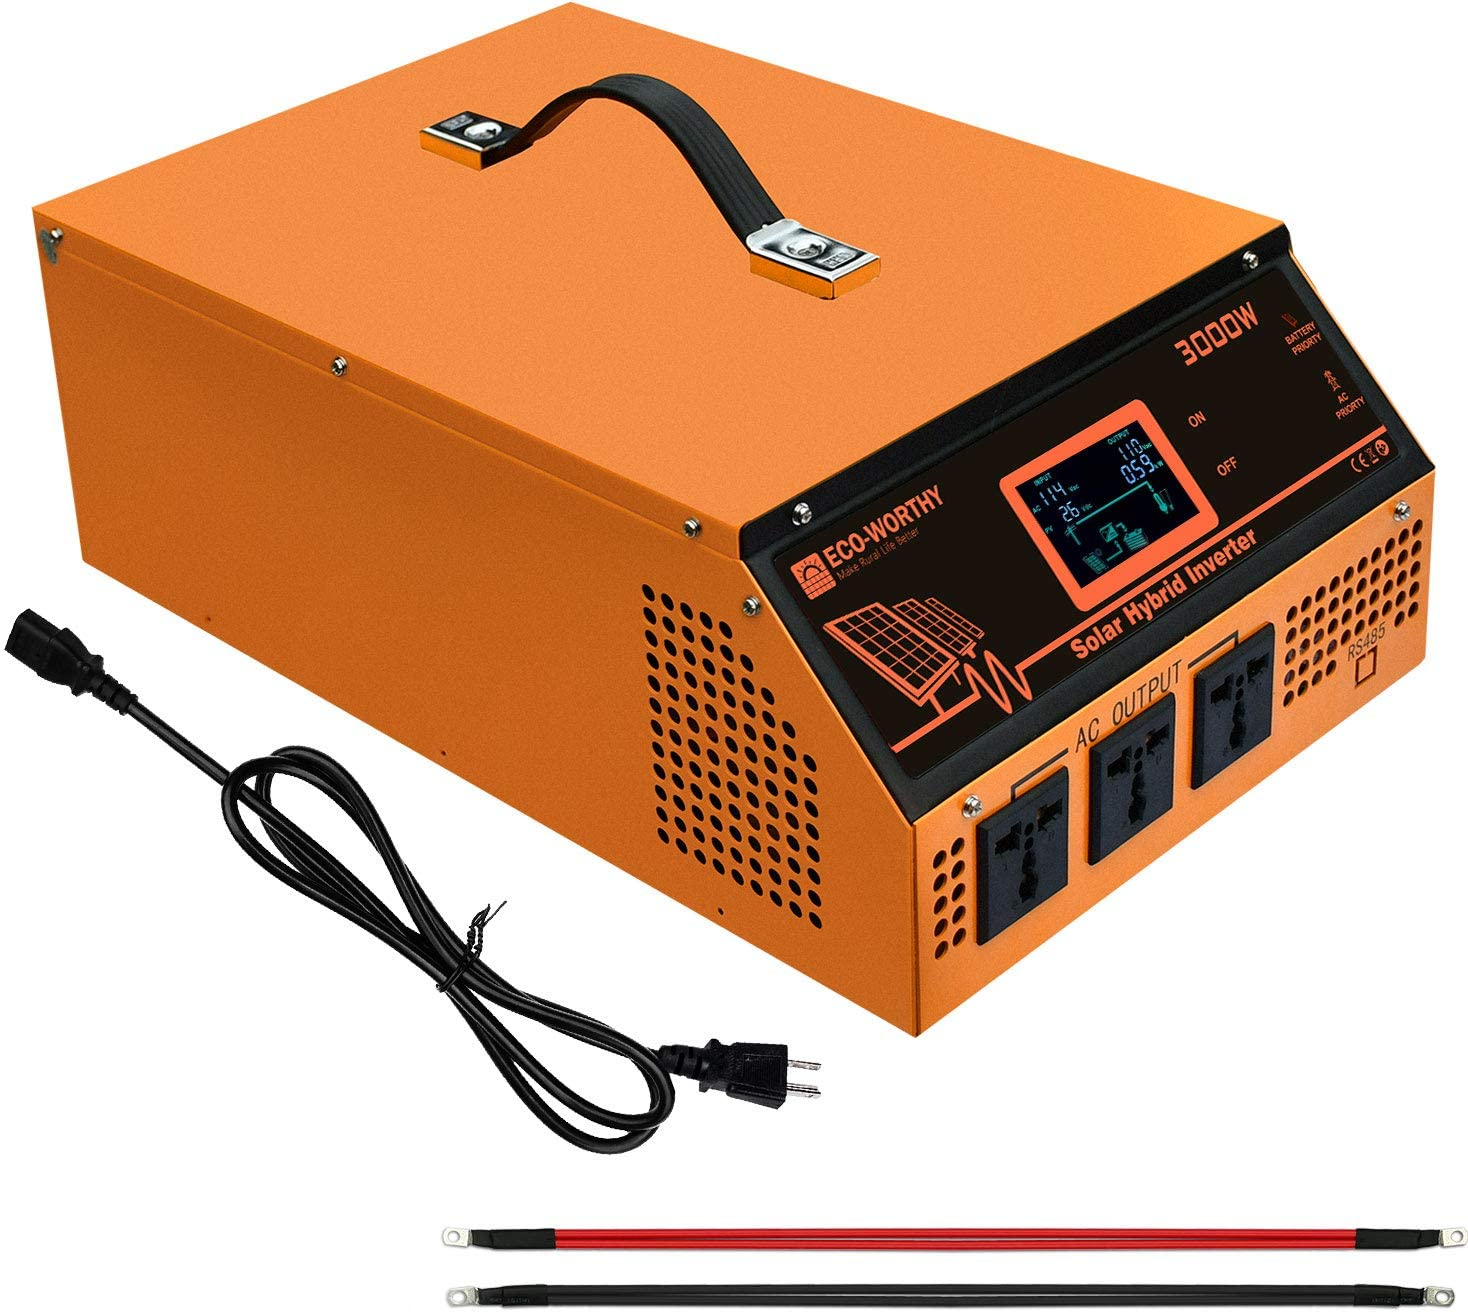 ECO-WORTHY All-in-one Solar Charger Inverter Built in 3000W 24V Pure Sine Wave Power Inverter and 50A Solar Controller for Off-Grid System